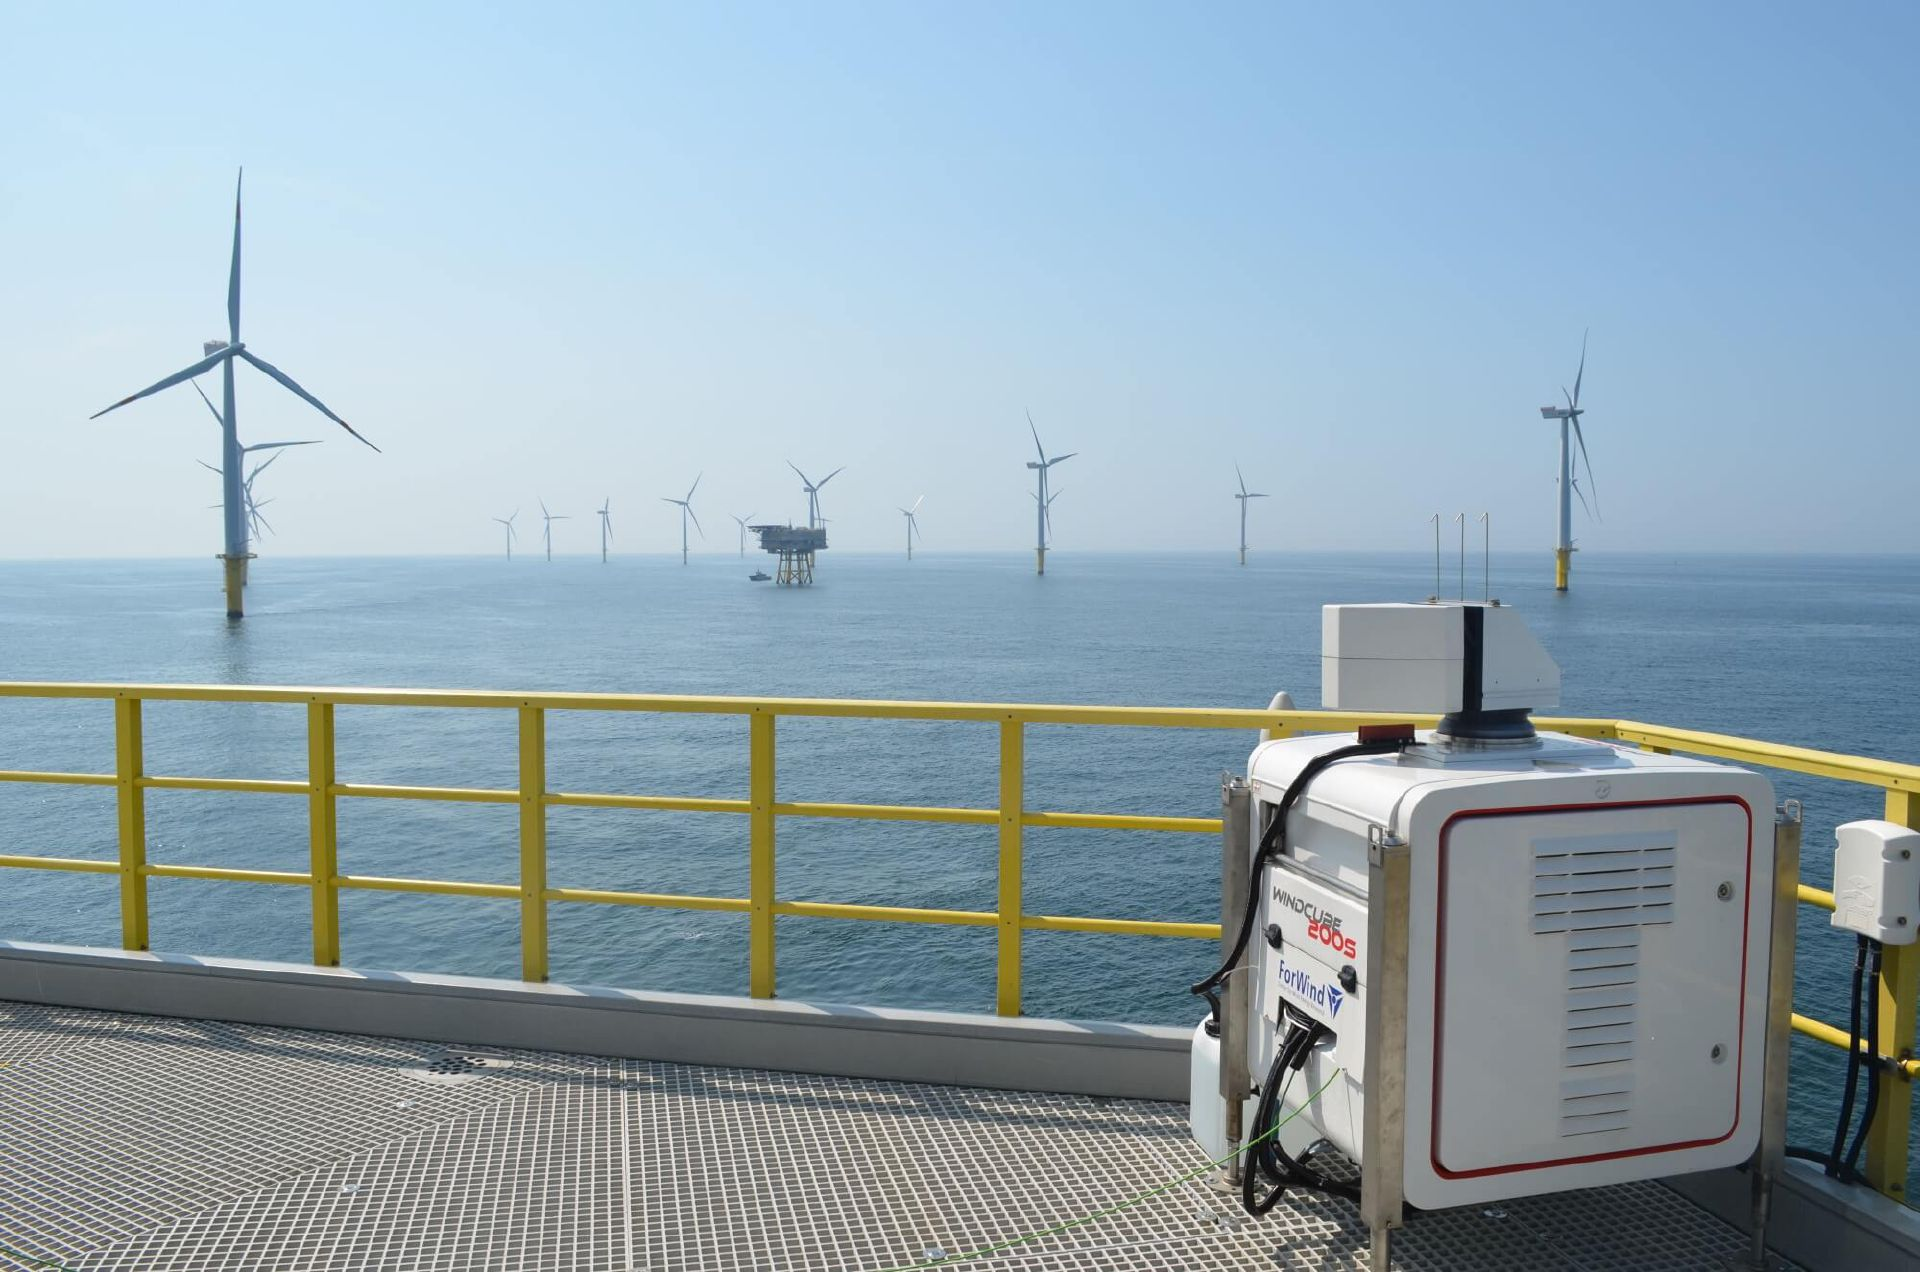 LiDAR-Windmessung in einem Offshore-Windfeld